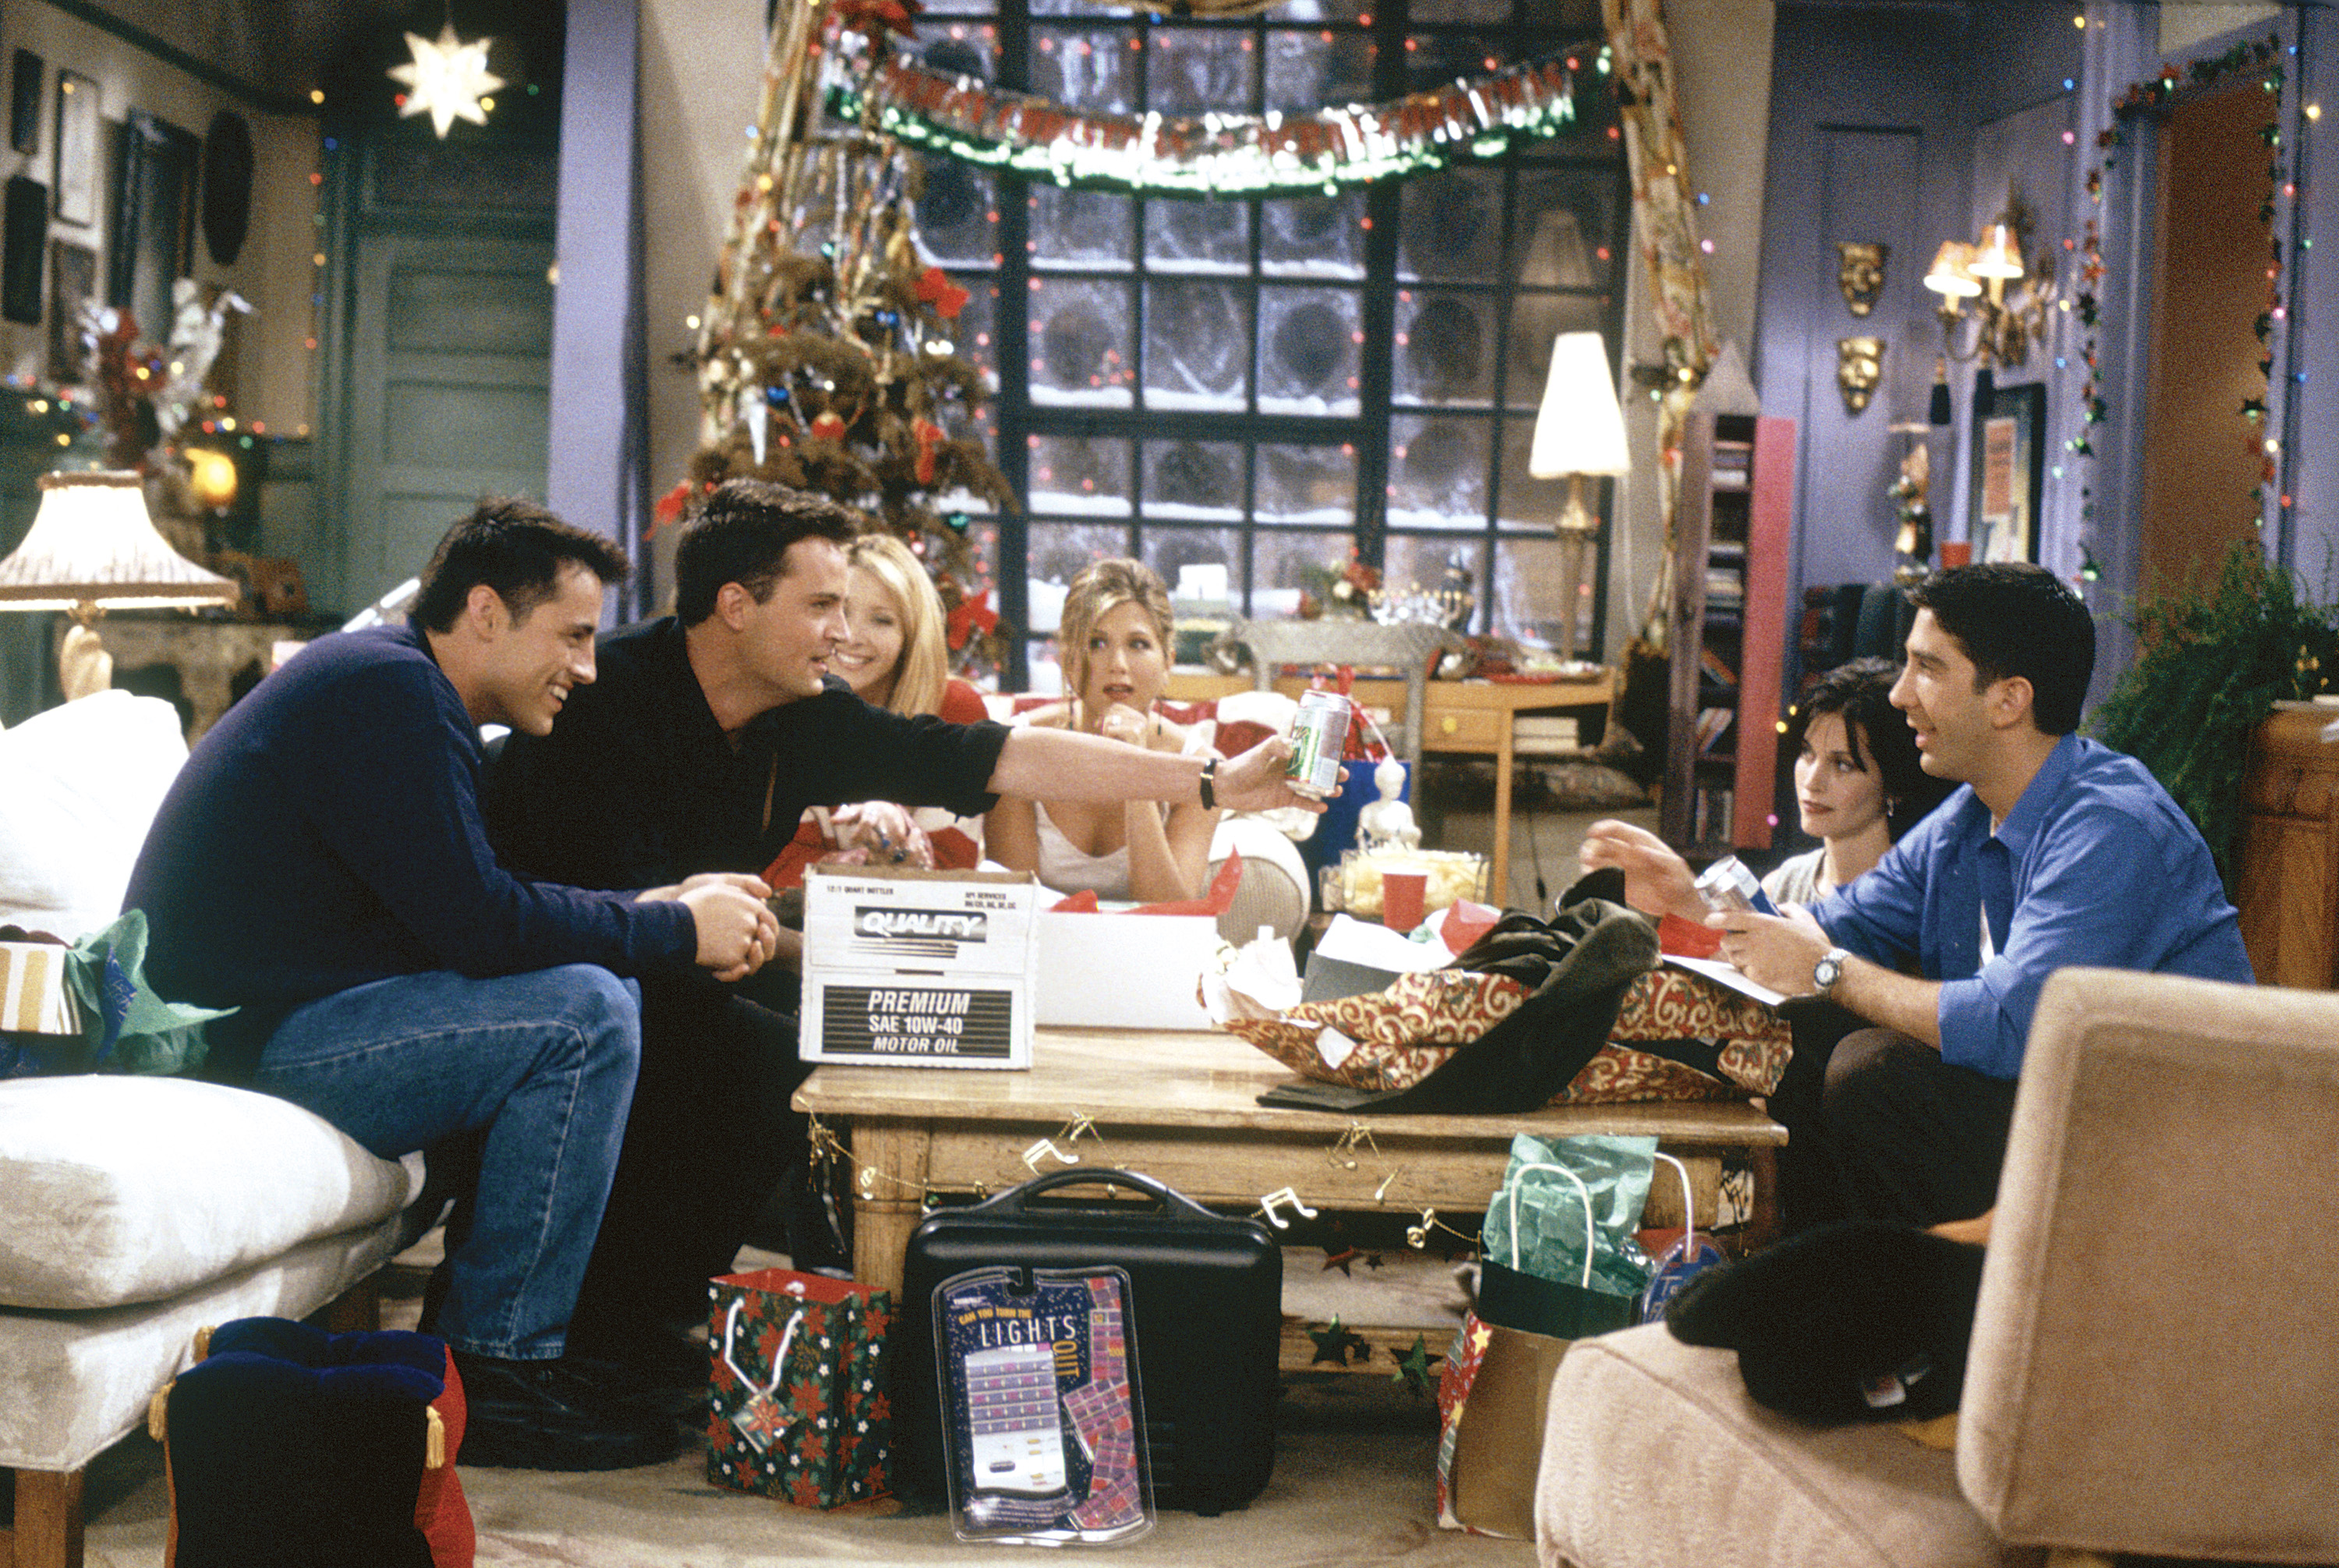 Jennifer Aniston and Matt LeBlanc were very against their most famous Friends storyline